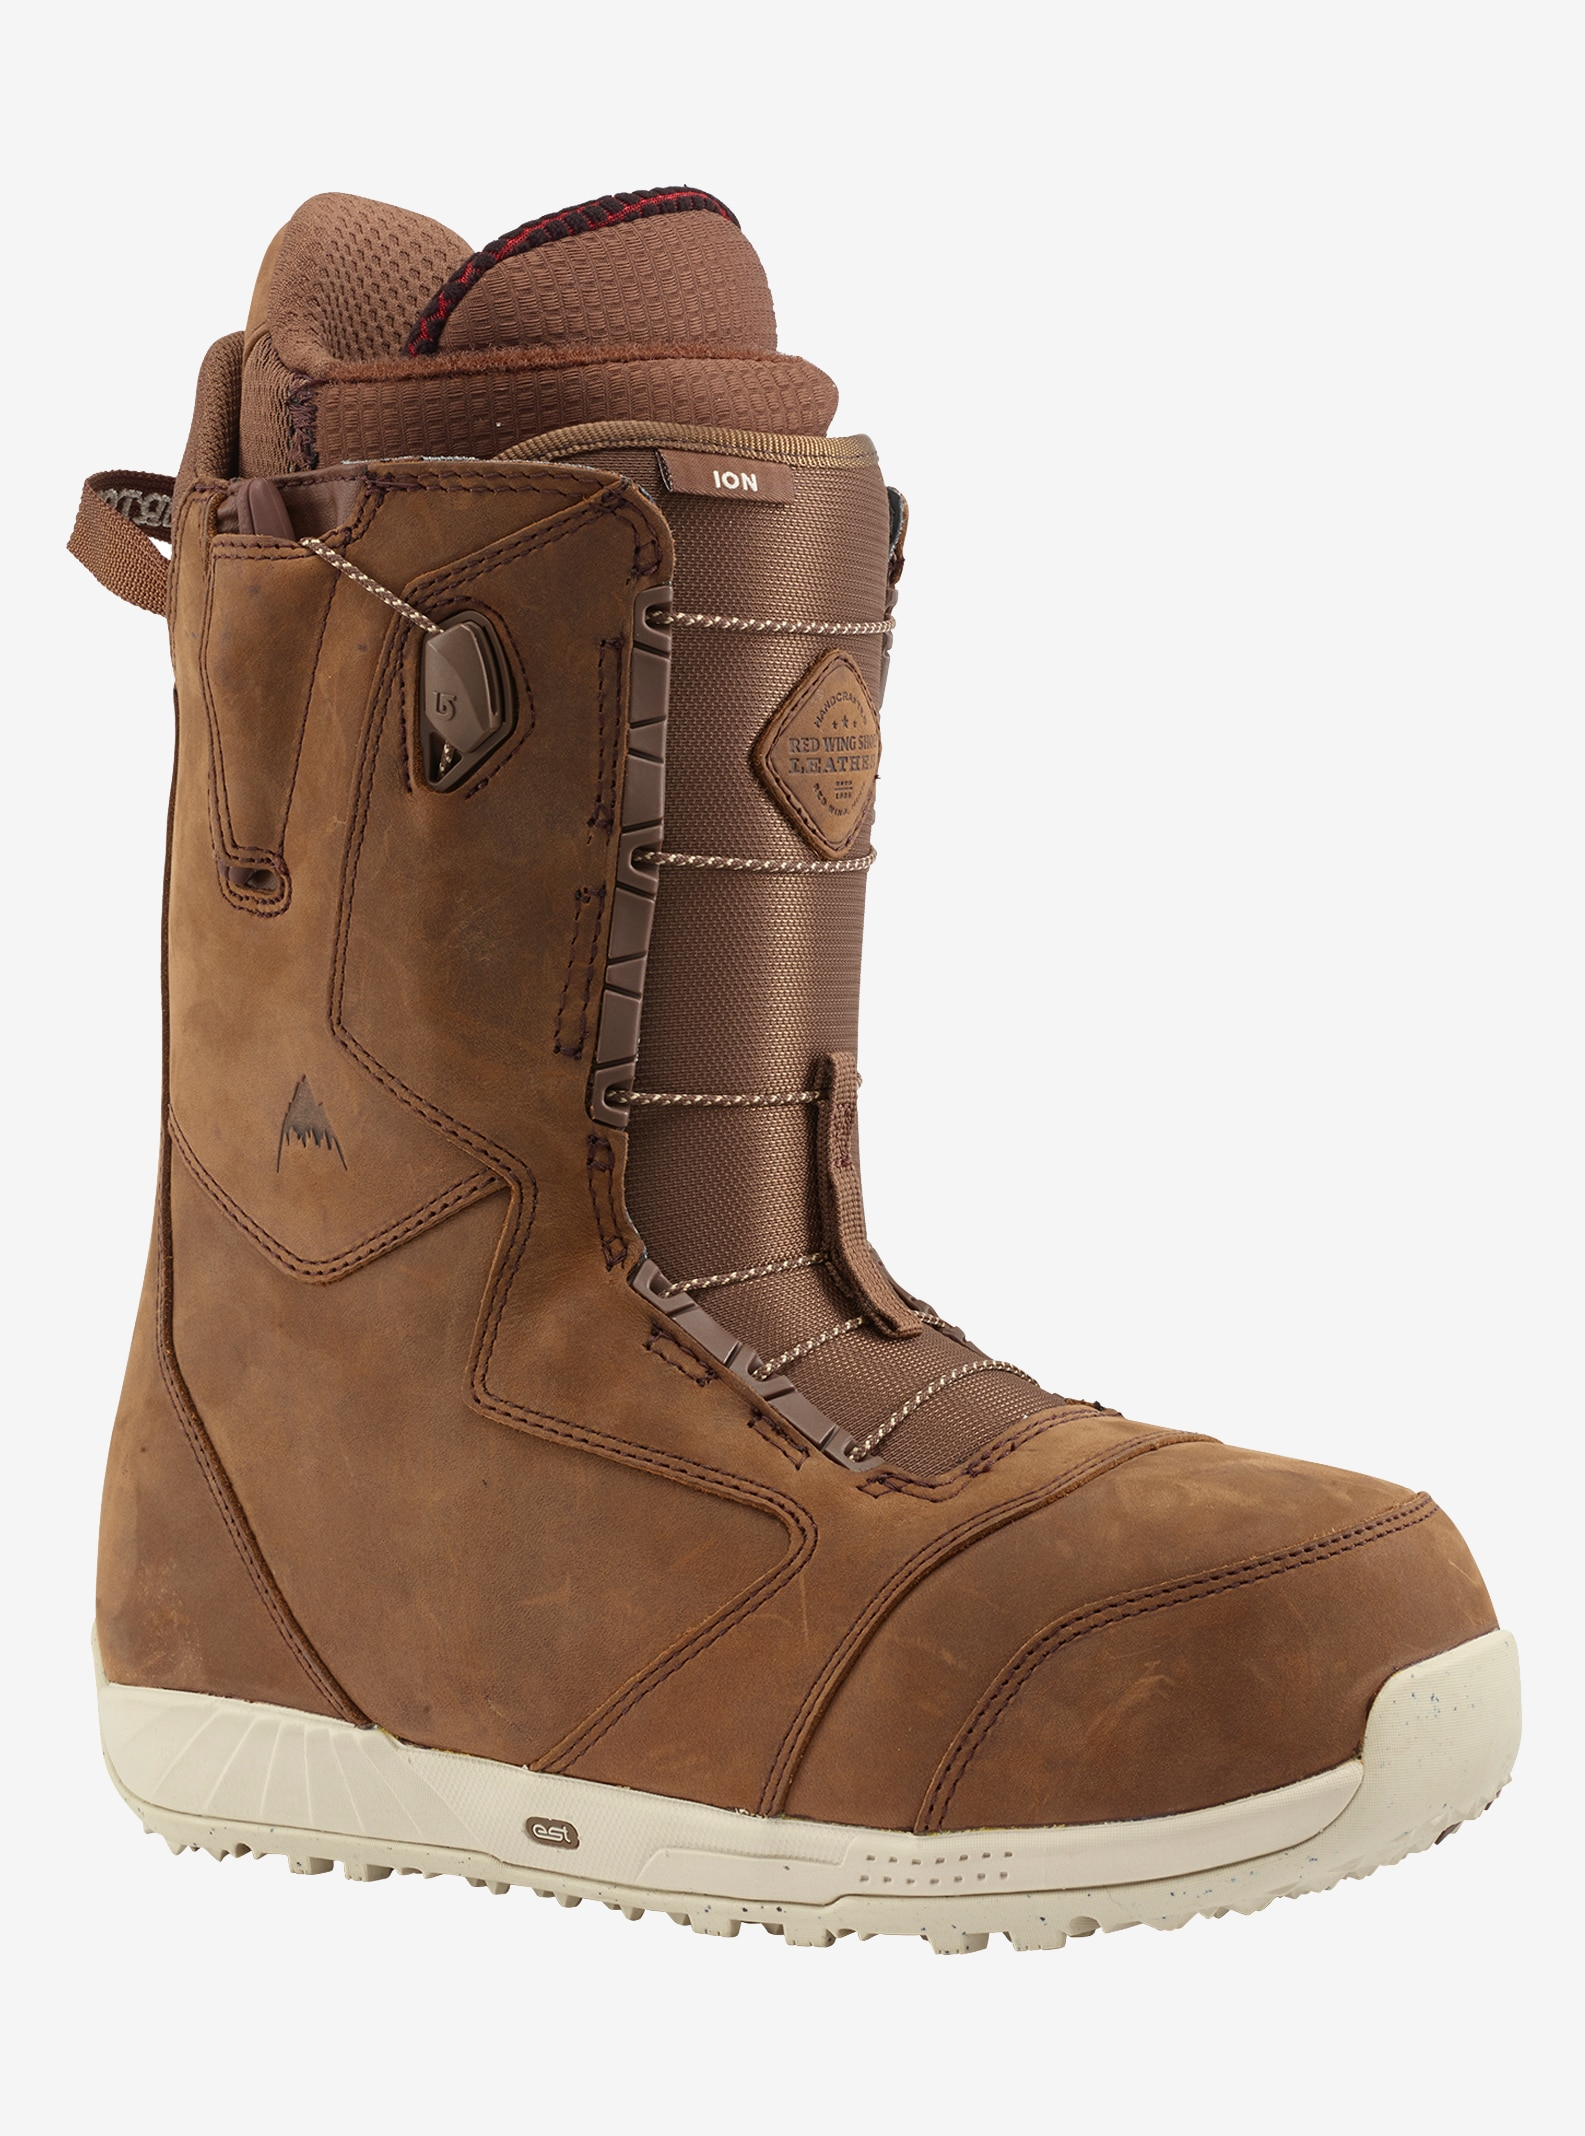 Men's Red Wing® Leather x Burton Ion Leather Snowboard Boot shown in Red Wing